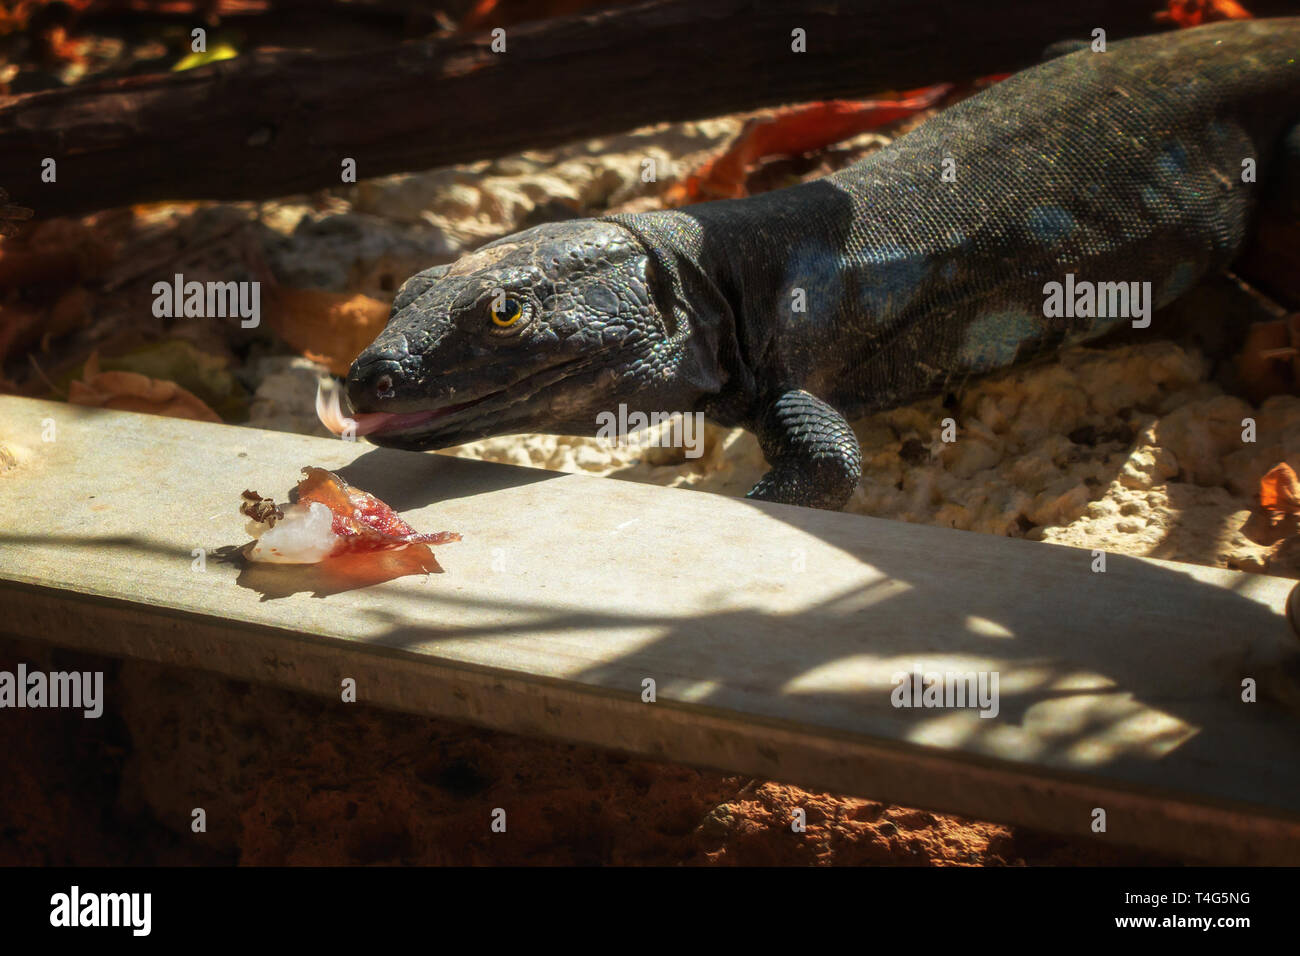 Male Tenerife lizard (Gallotia galloti) about to eat some parma ham with its tongue sticking out - Stock Image